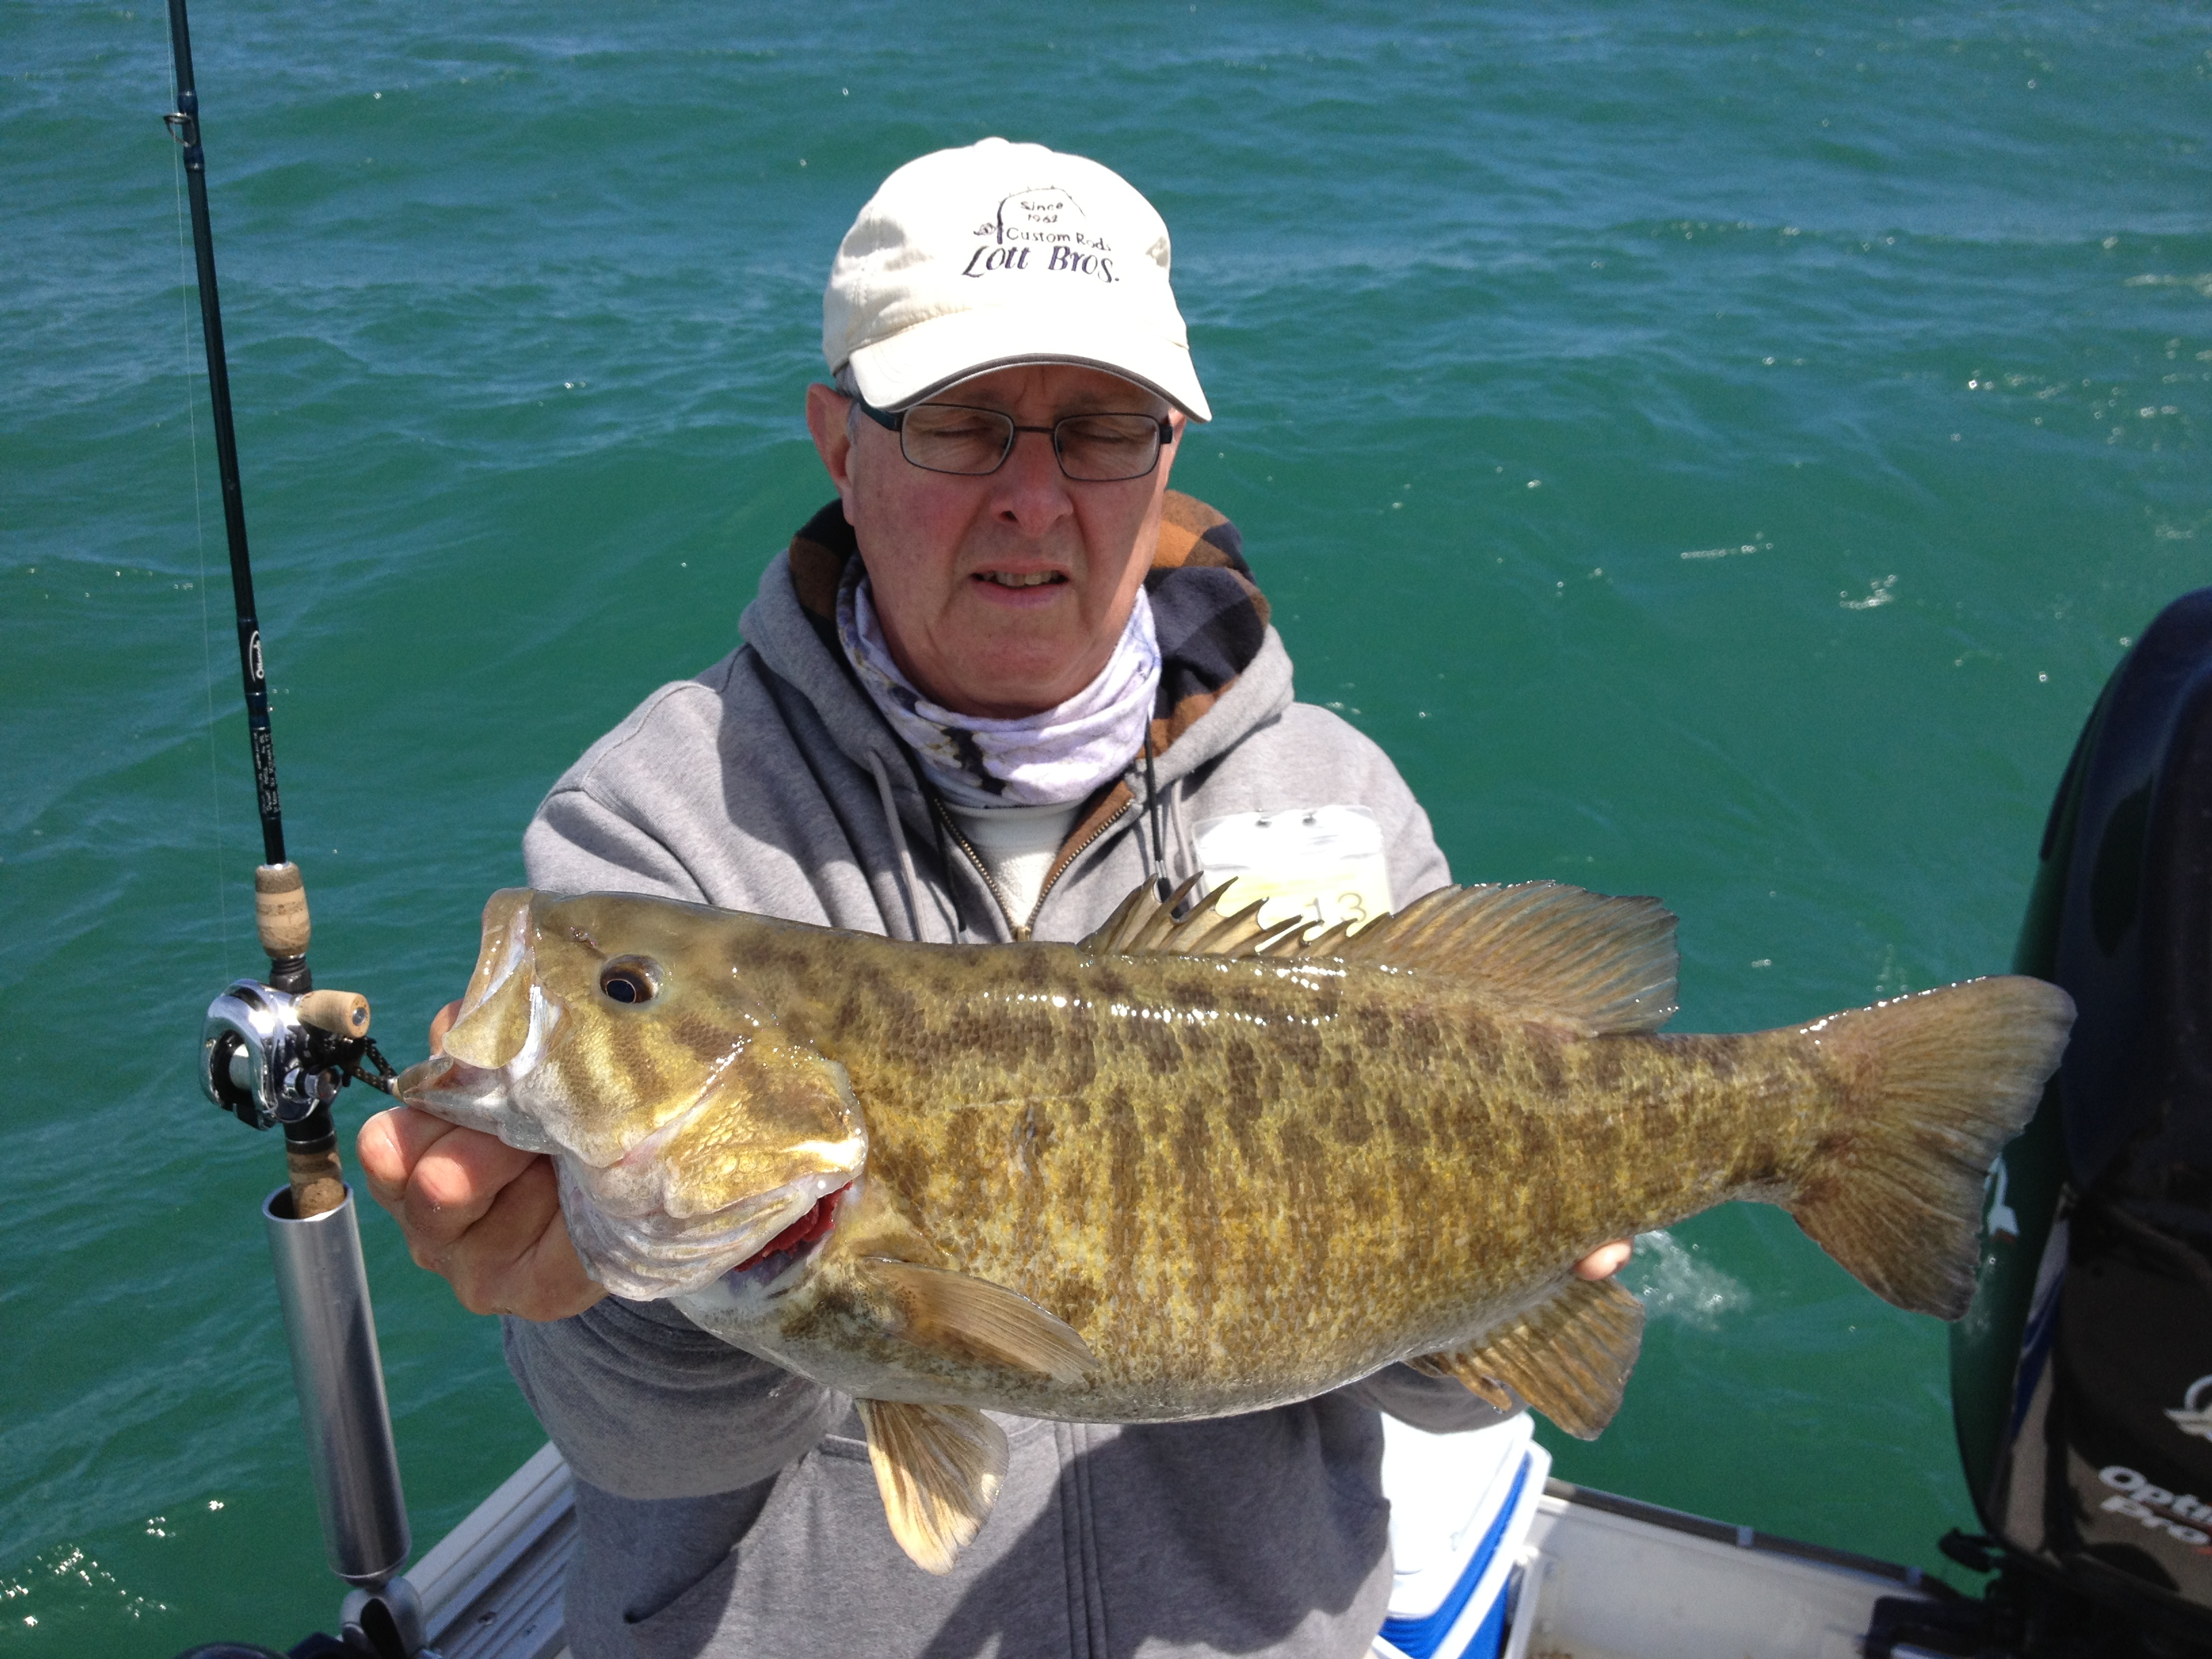 Dwight Hottle Erie PA  I caught this smallie while fishing with a friend this spring. We were